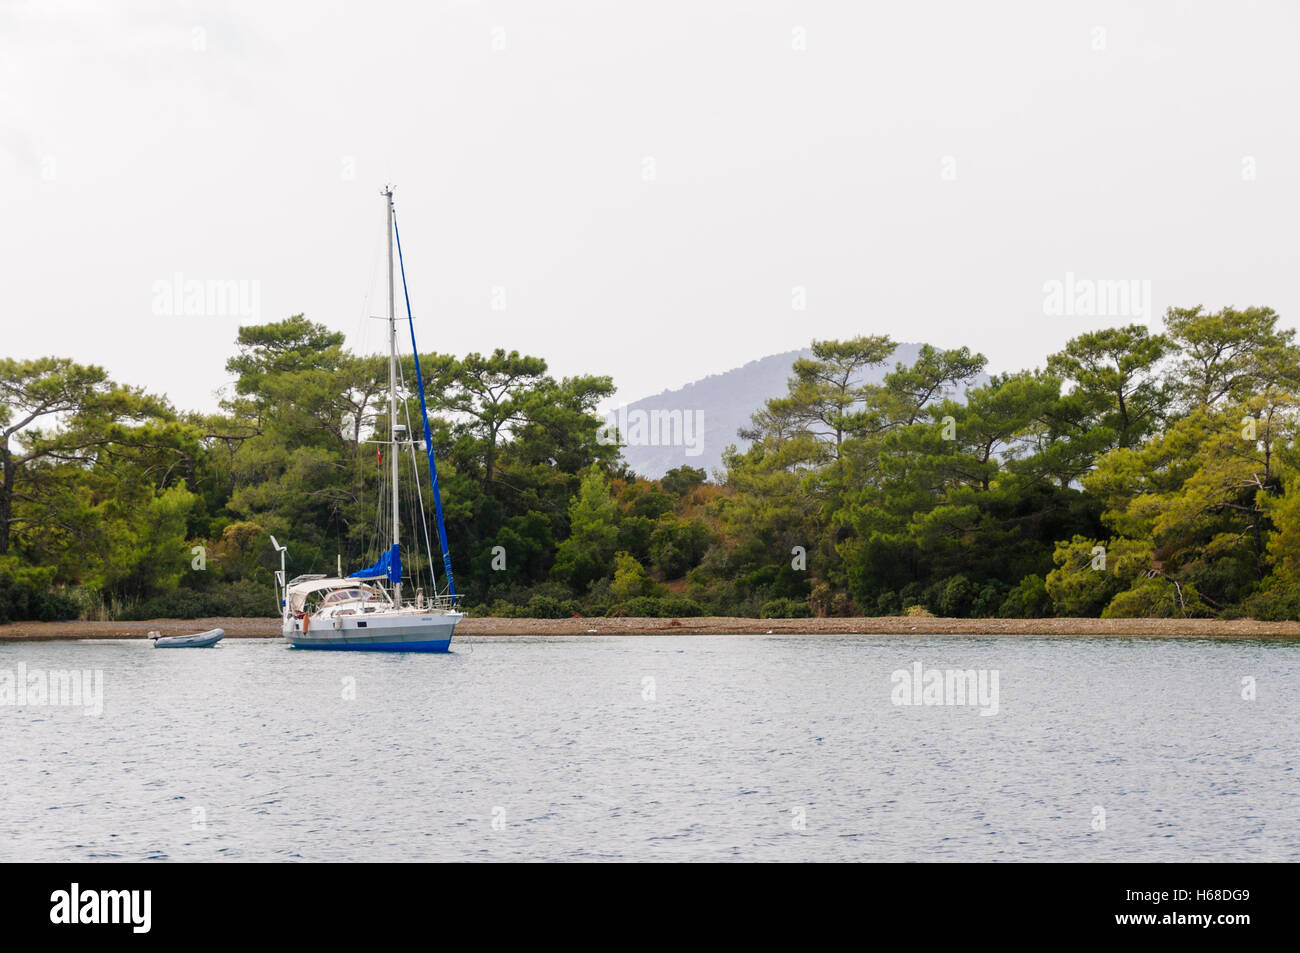 A yacht anchored off the beach of a Turkish tree covered island. - Stock Image